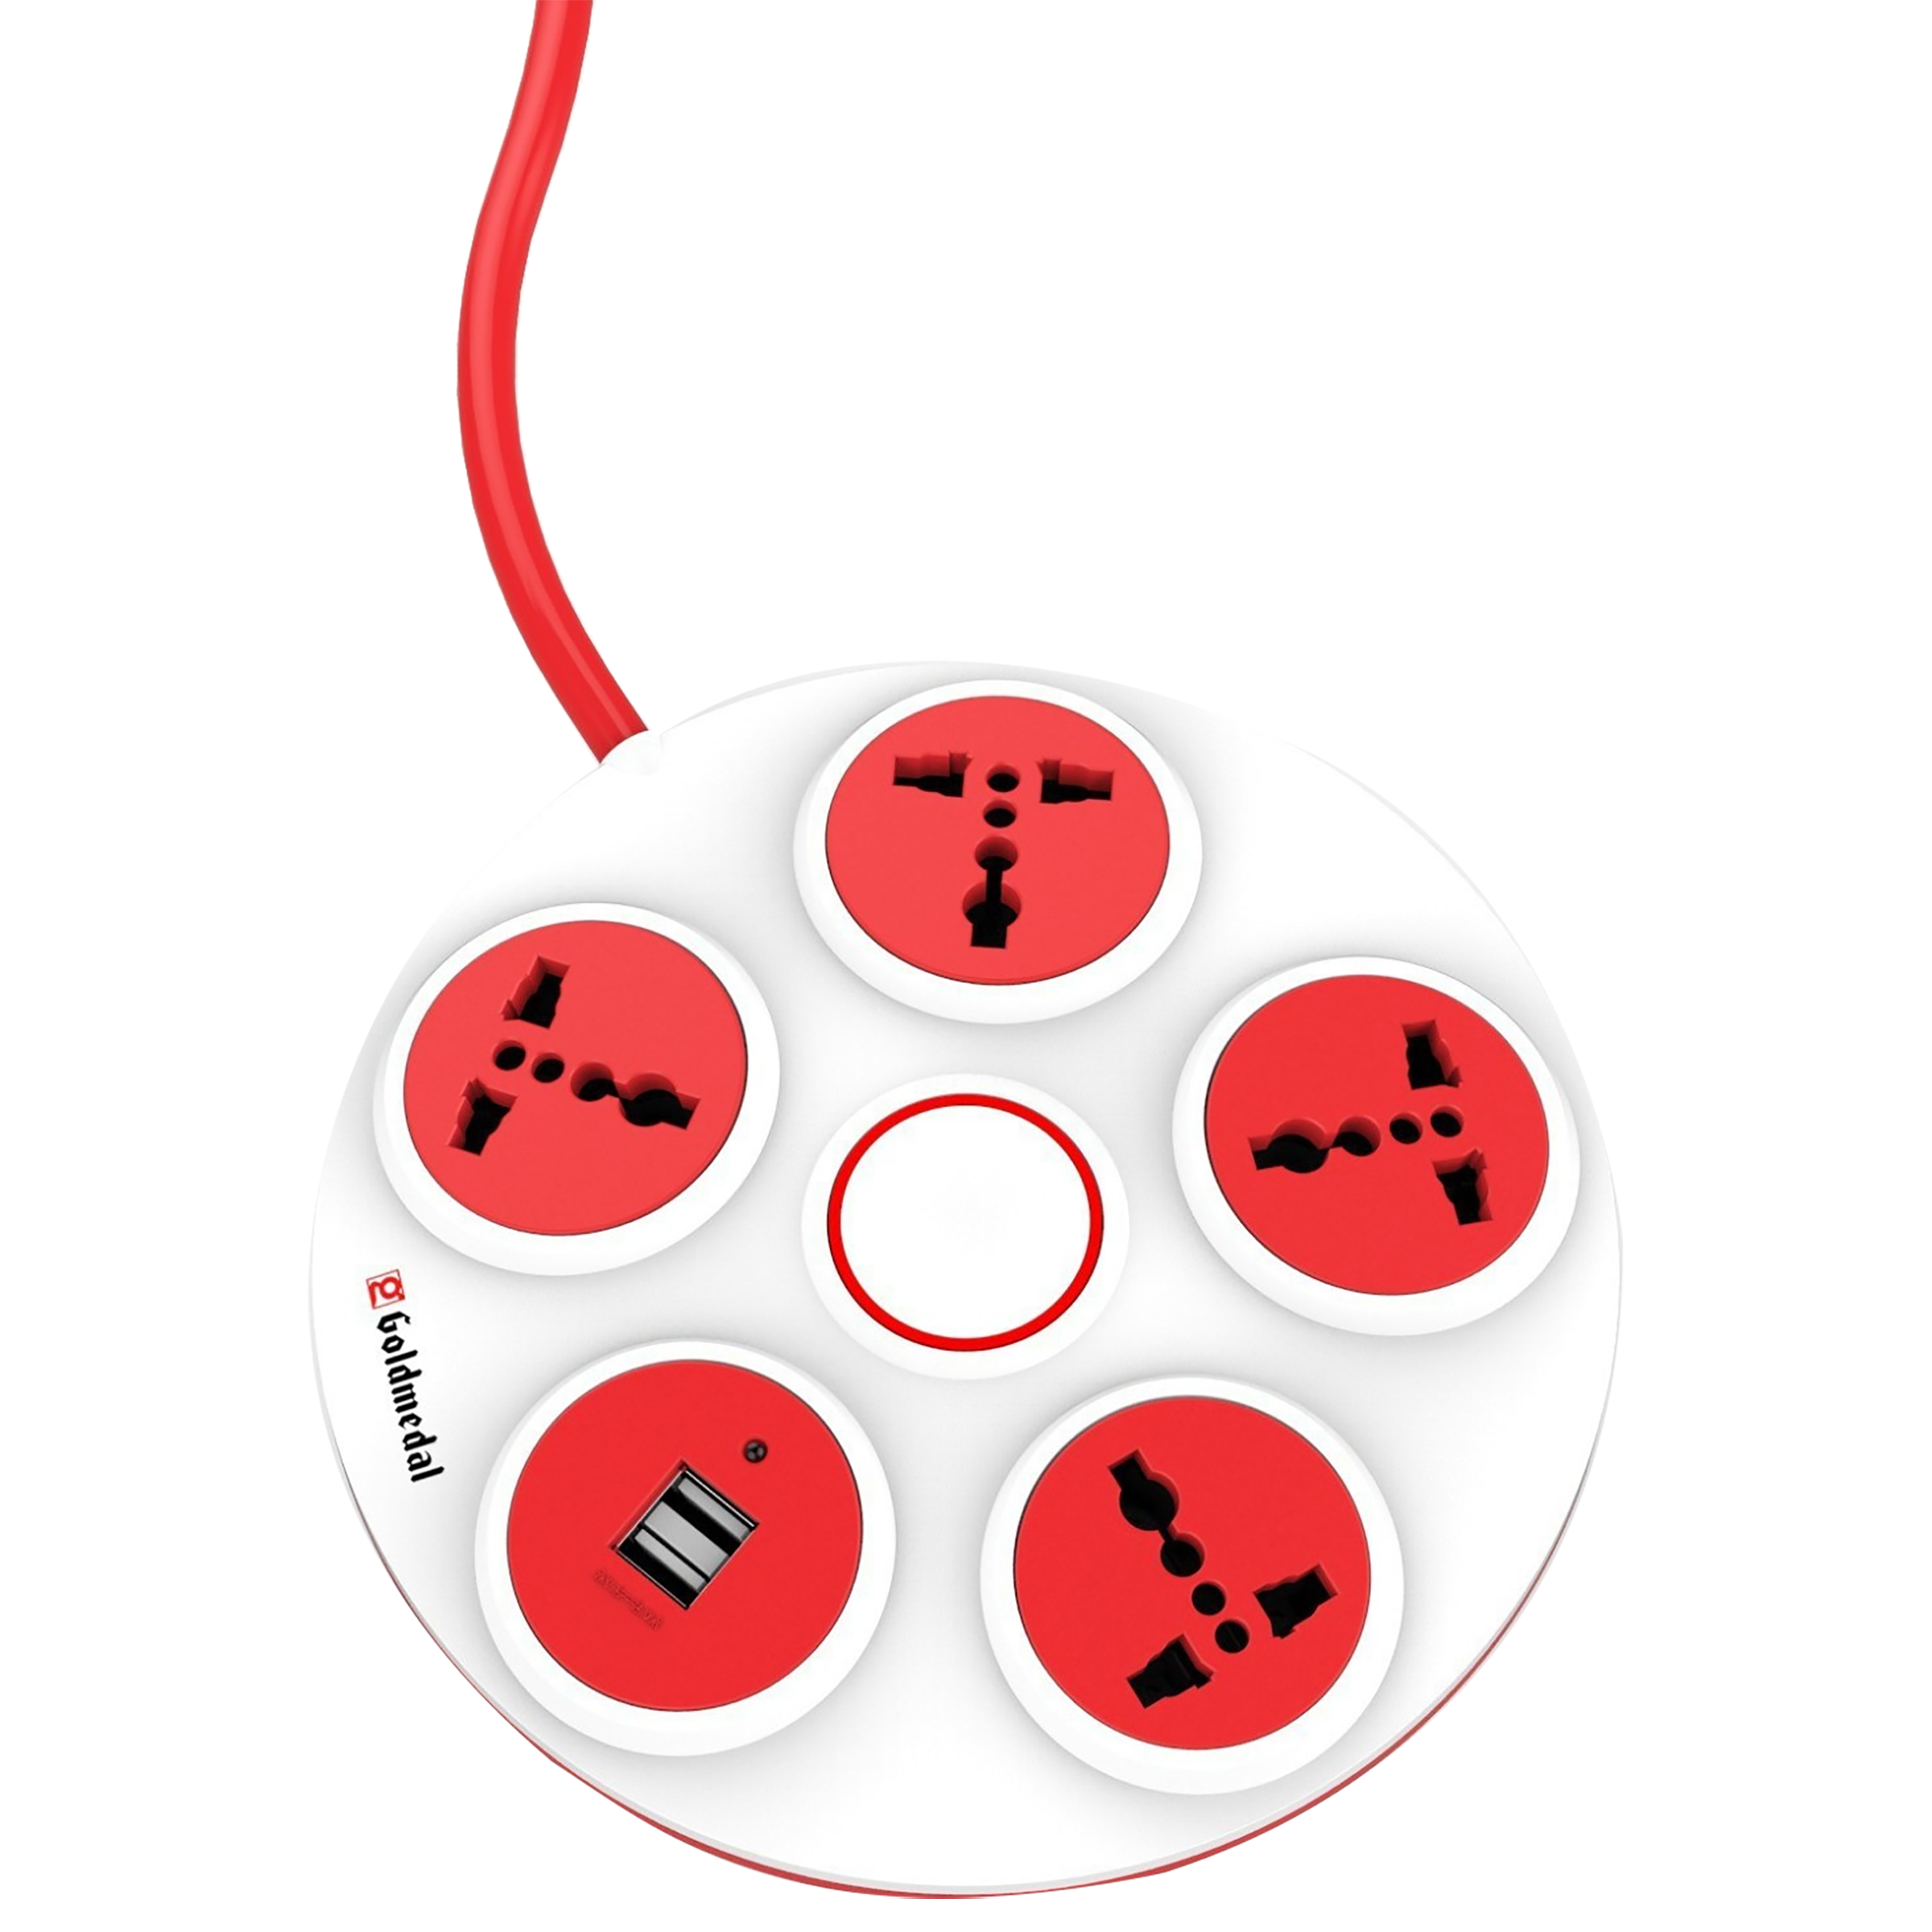 Goldmedal Curve 6 Amp 4 Sockets Spike Guard With Individual Switch 2 Meters (High Grade Fire Retardant Plastic, 205106, White/Red)_1